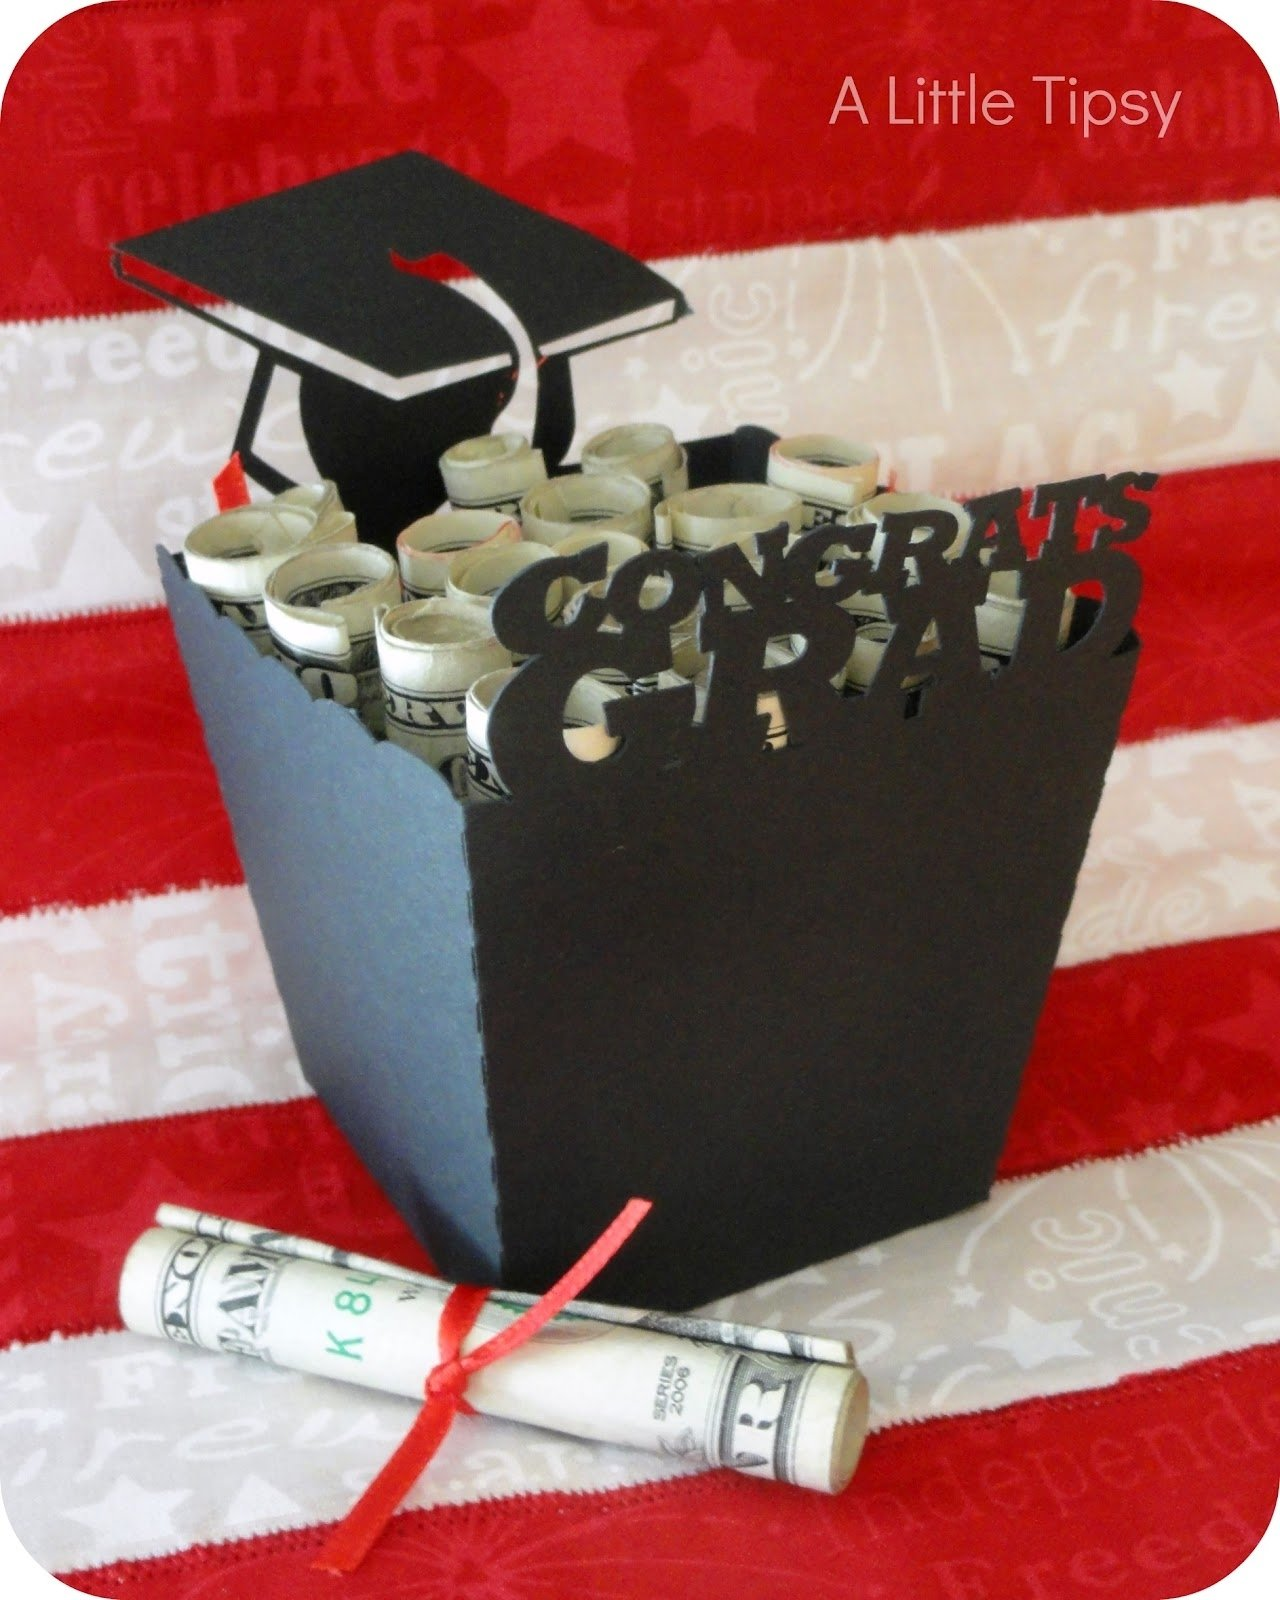 10 Attractive Graduation Gifts Ideas For Her last minute graduation gift a little tipsy 2020